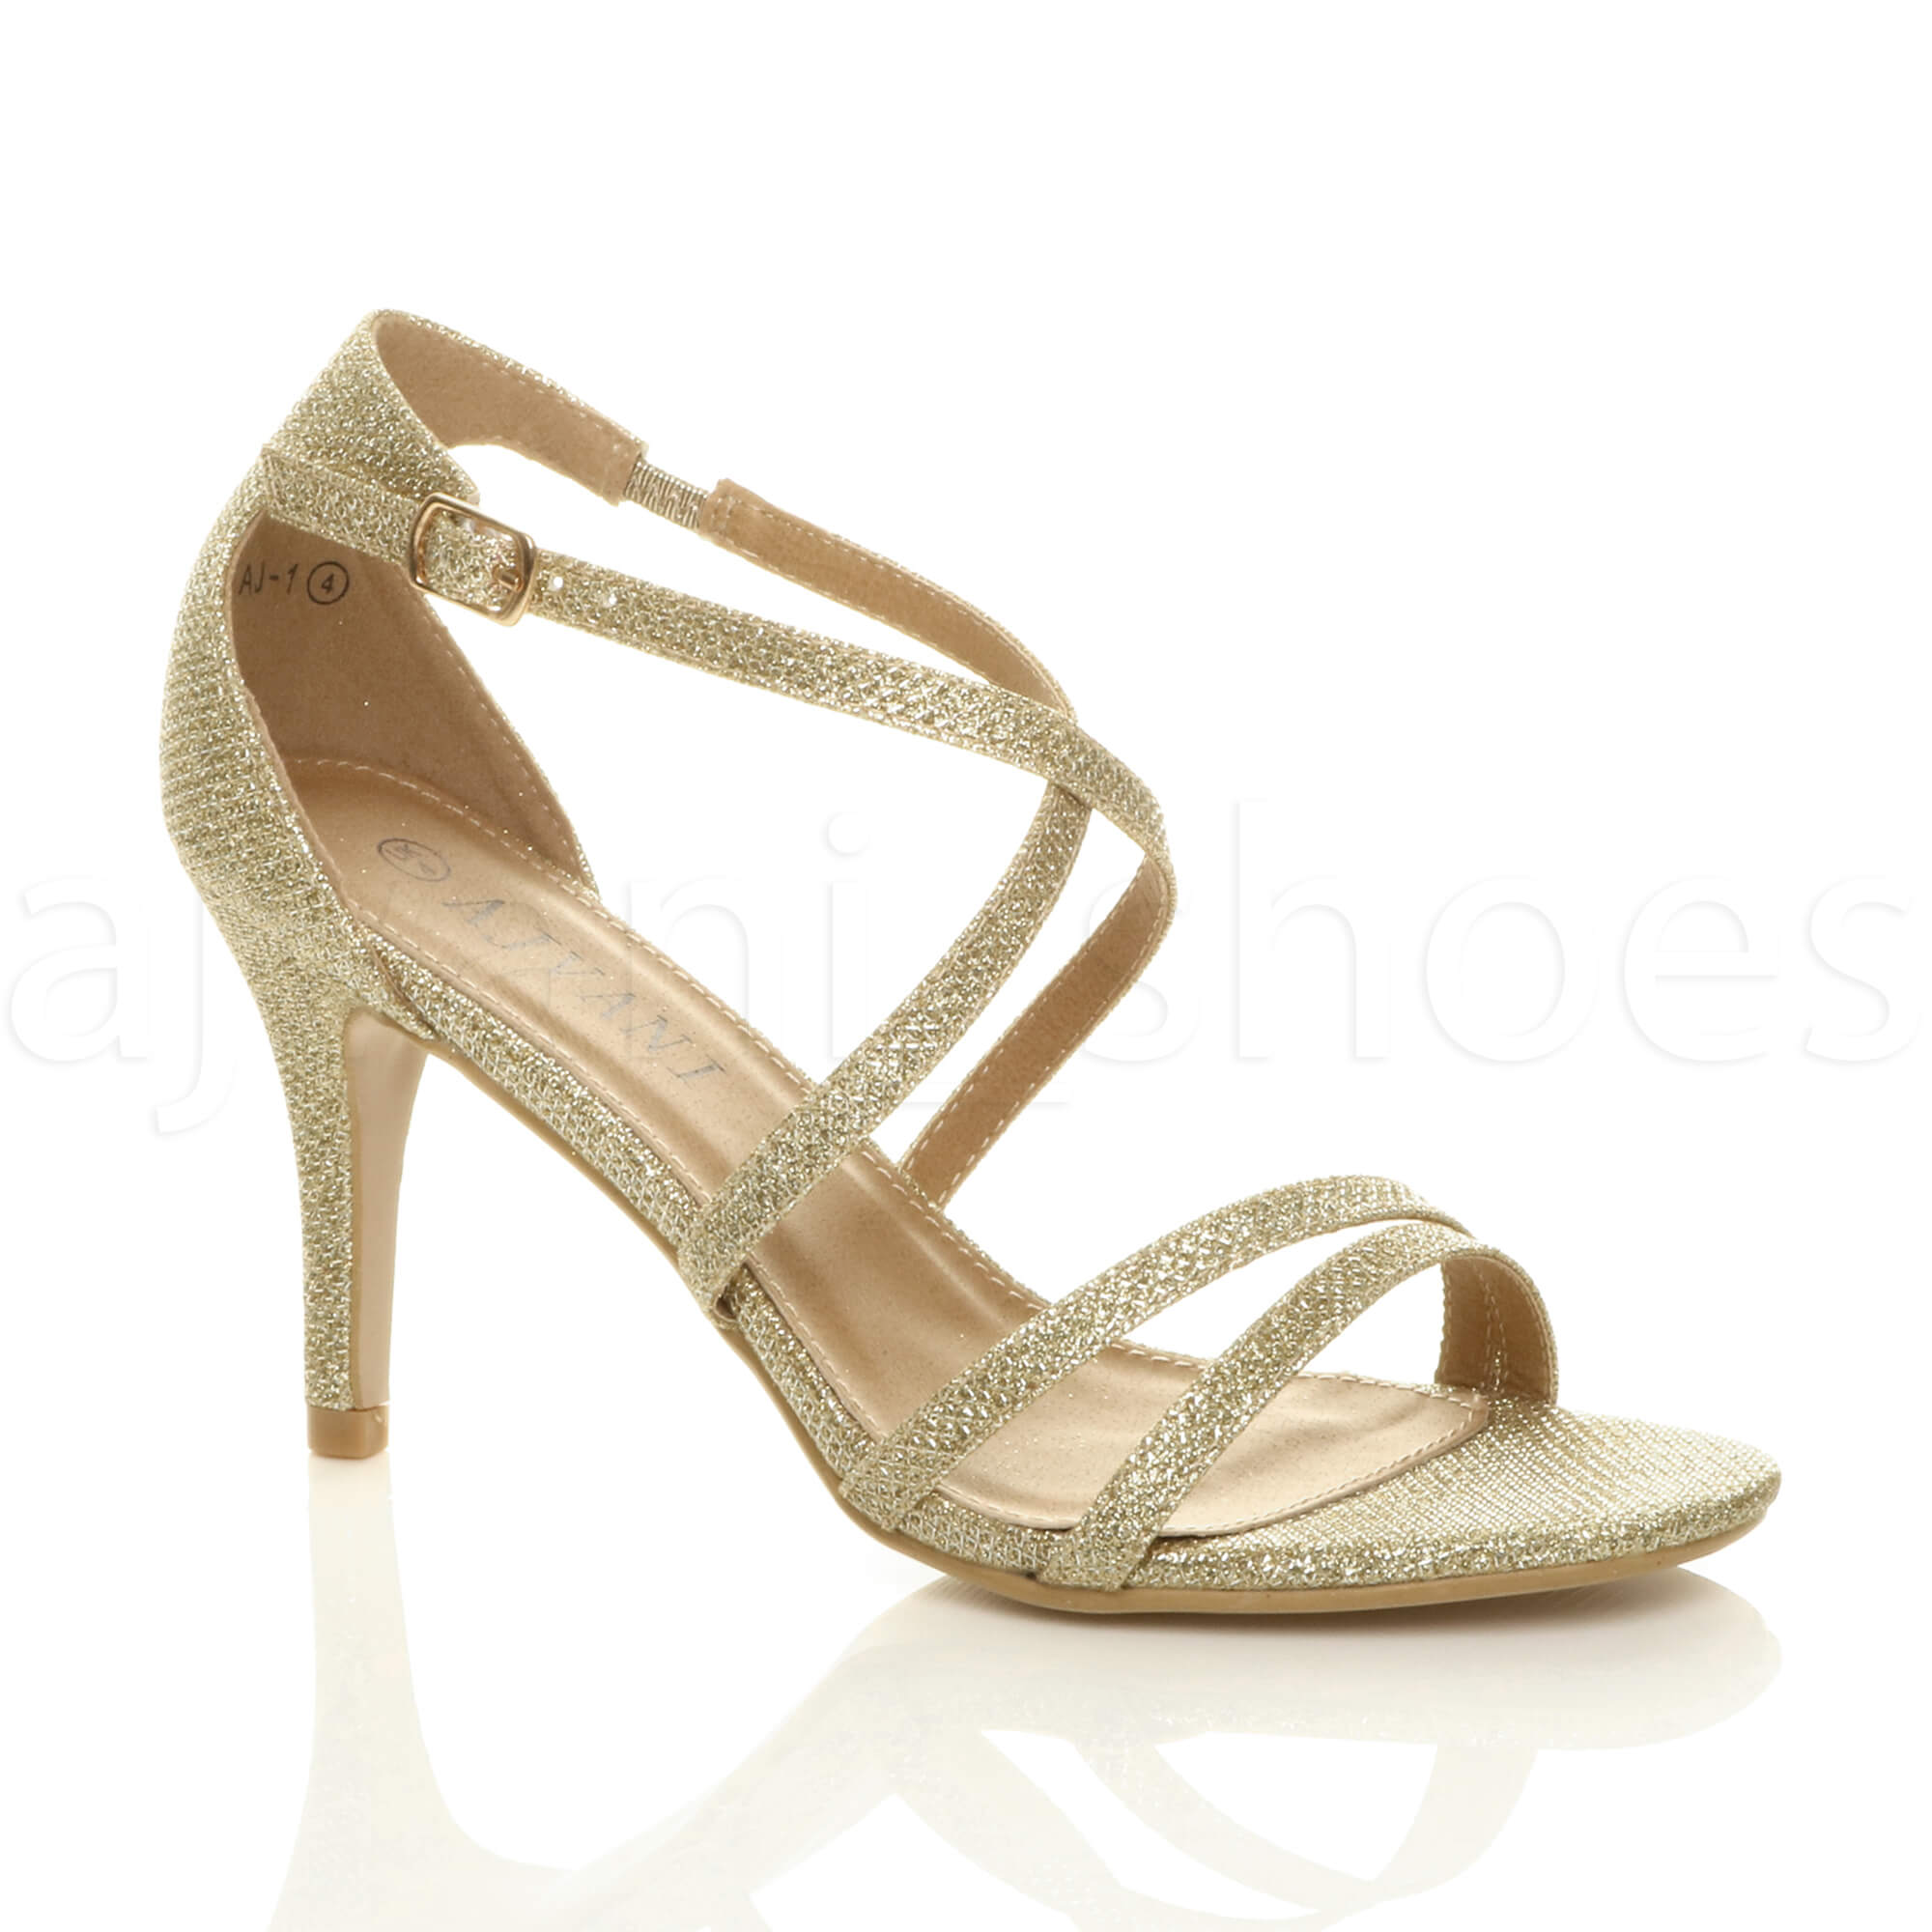 WOMENS-LADIES-MID-HIGH-HEEL-STRAPPY-CROSSOVER-WEDDING-PROM-SANDALS-SHOES-SIZE thumbnail 72